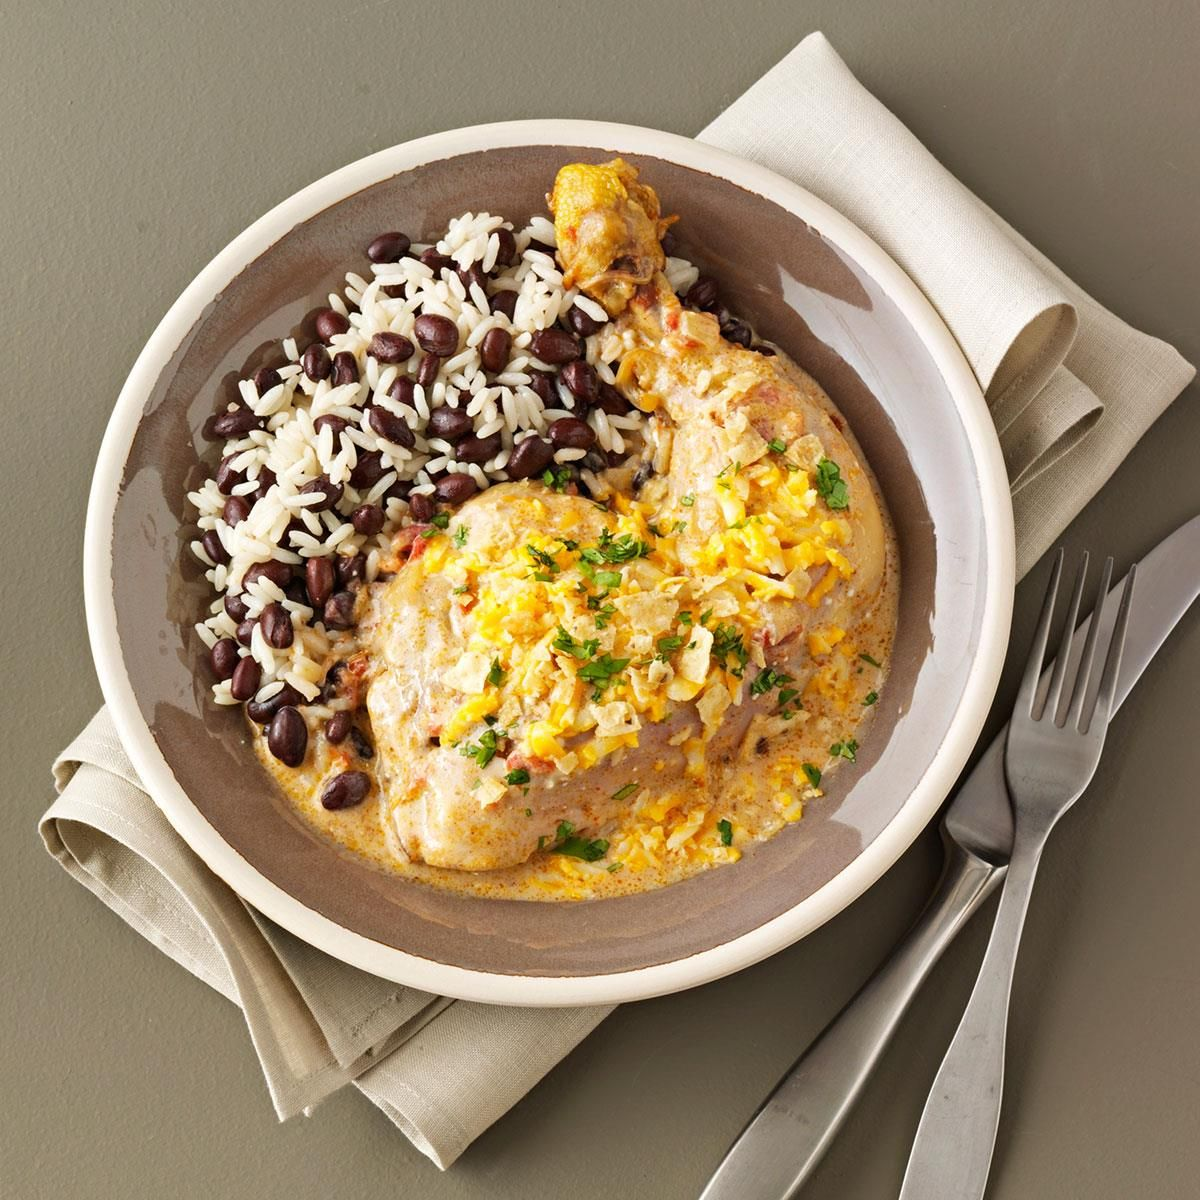 Forum on this topic: TexMex Rice and Beans, texmex-rice-and-beans/